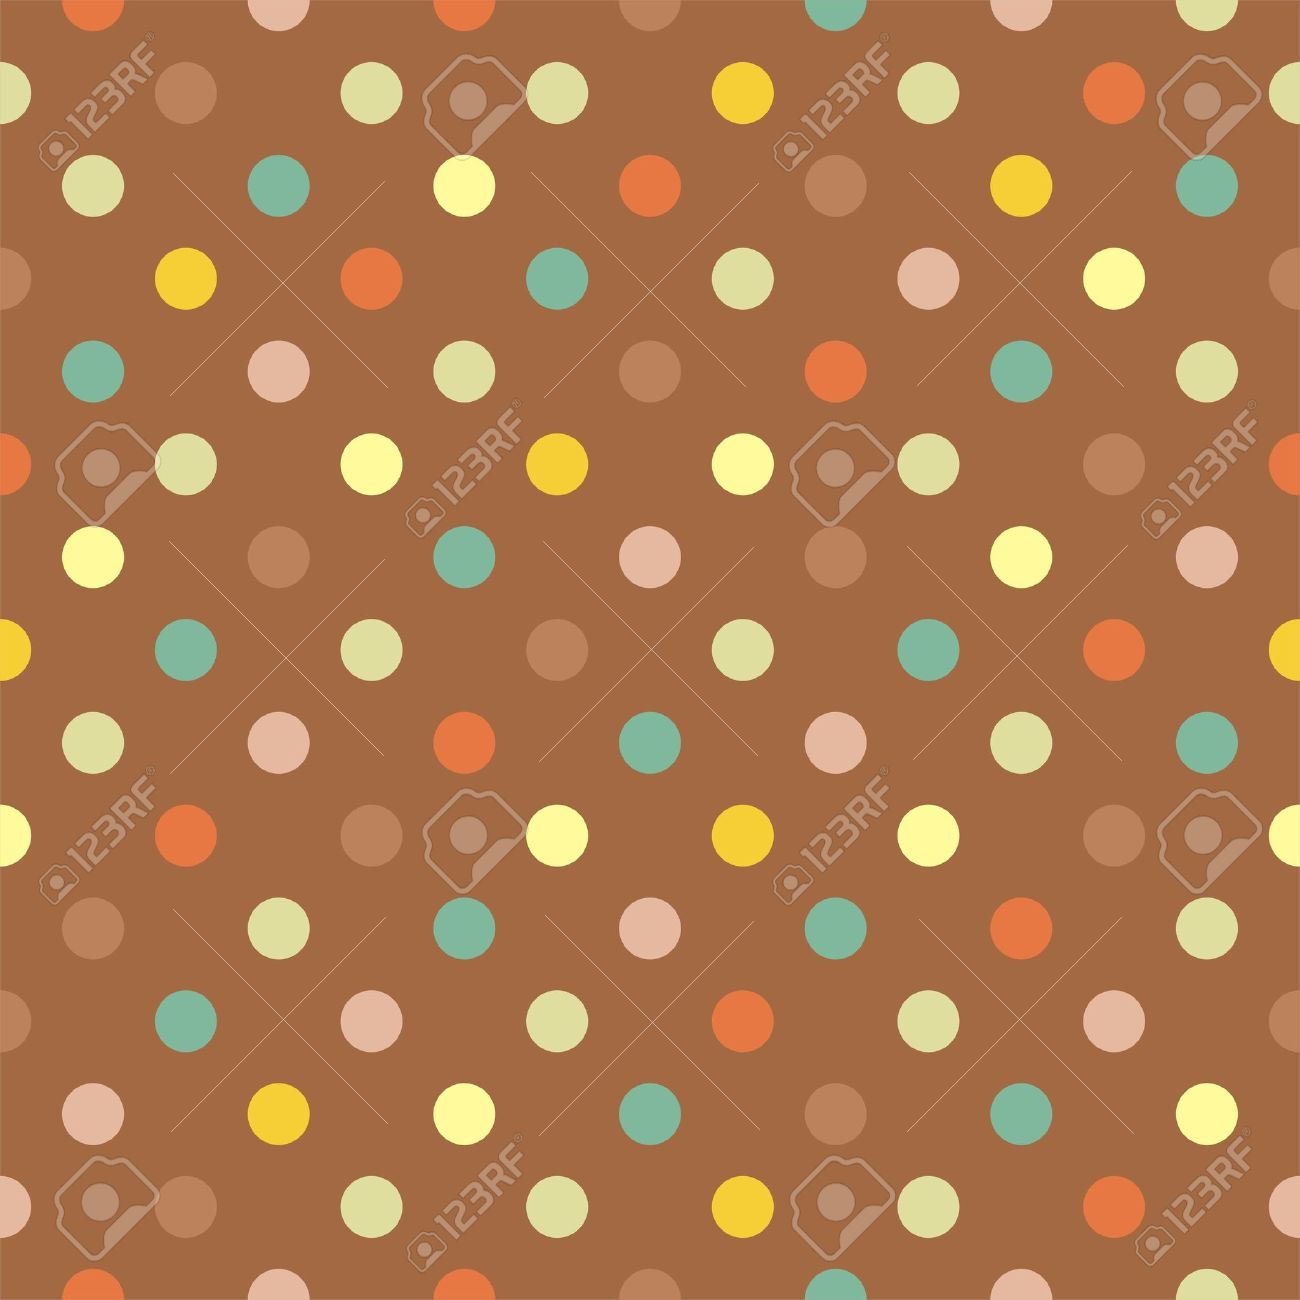 Retro  pattern with blue, yellow, green and red polka dots on neutral brown background - retro seamless pattern for backgrounds, blogs, www, scrapbooks, party or baby shower invitations and wedding cards. Stock Vector - 15216127